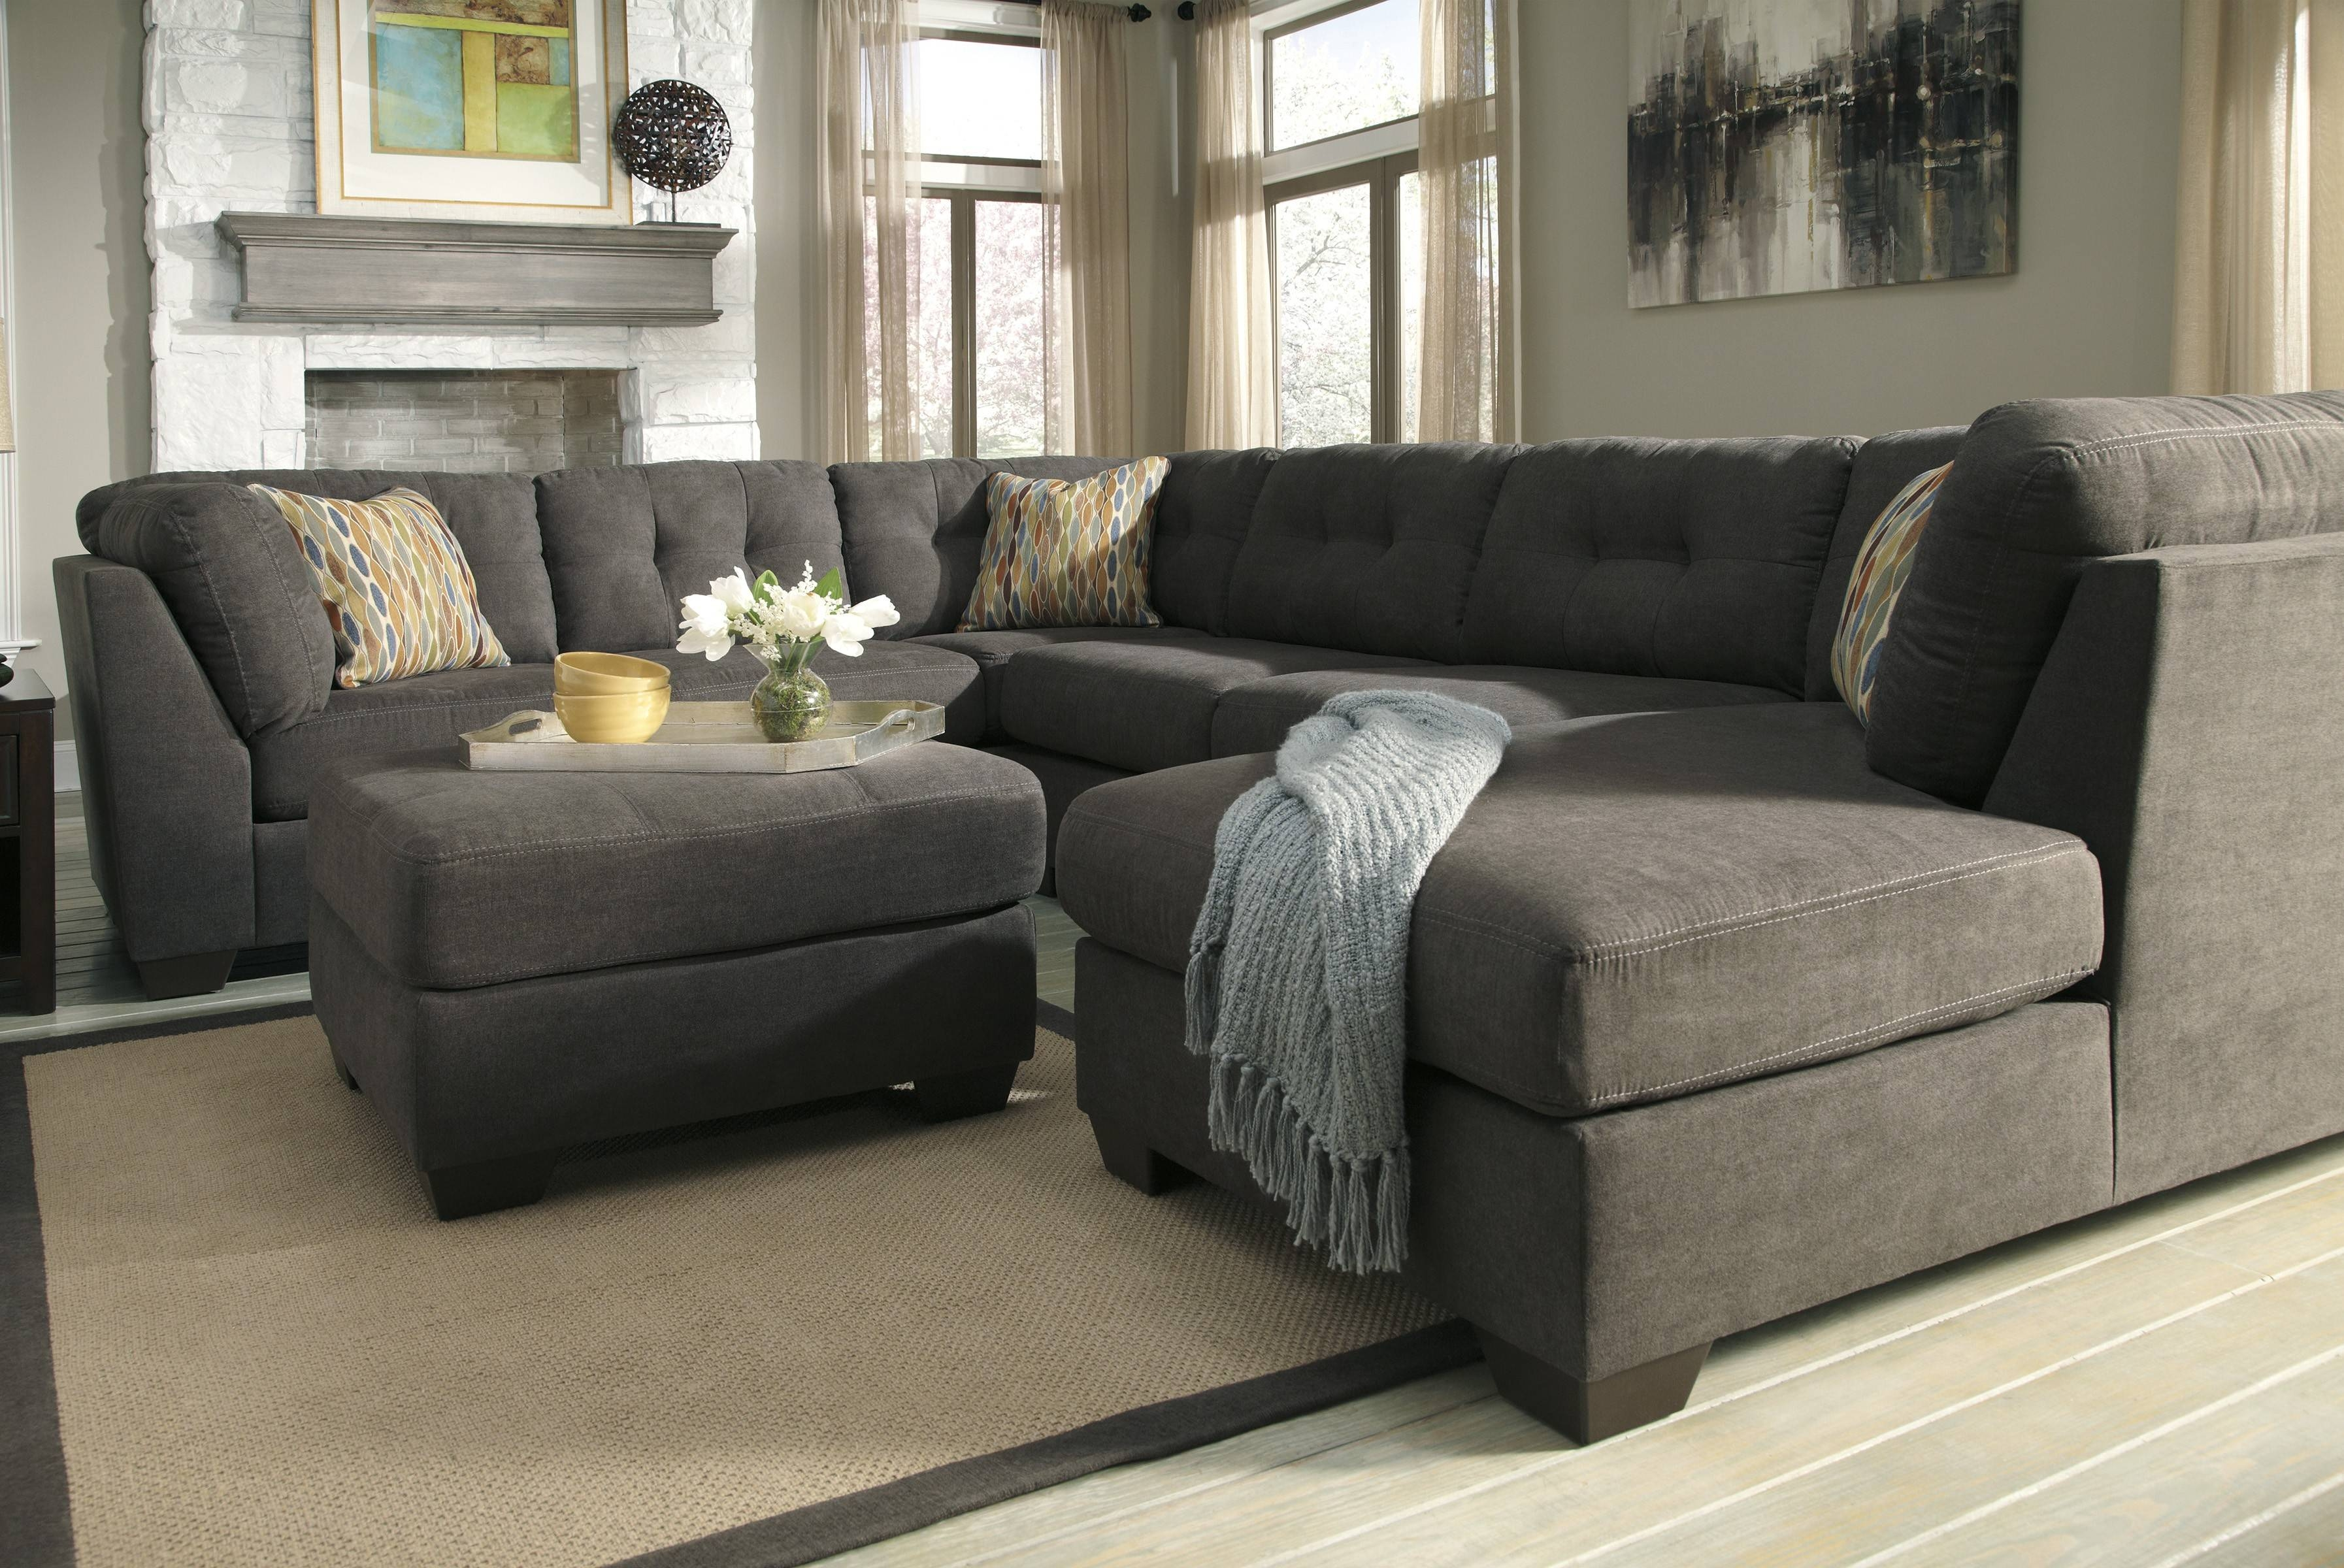 jackson sofa west elm couches sofas cape town 2018 latest sectional